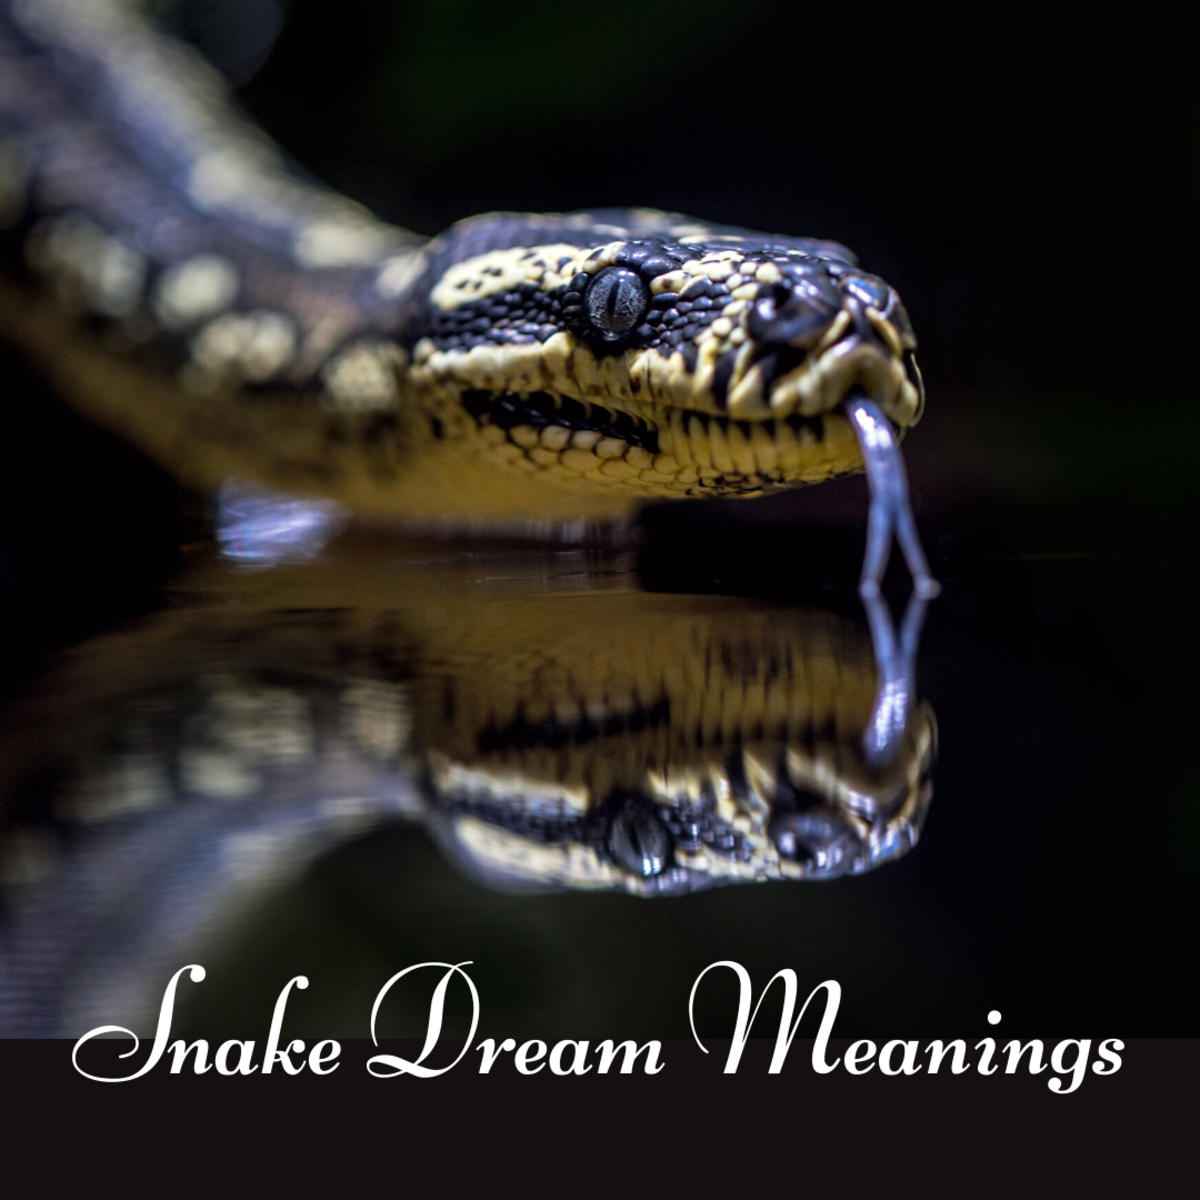 What does it mean to dream about snakes?